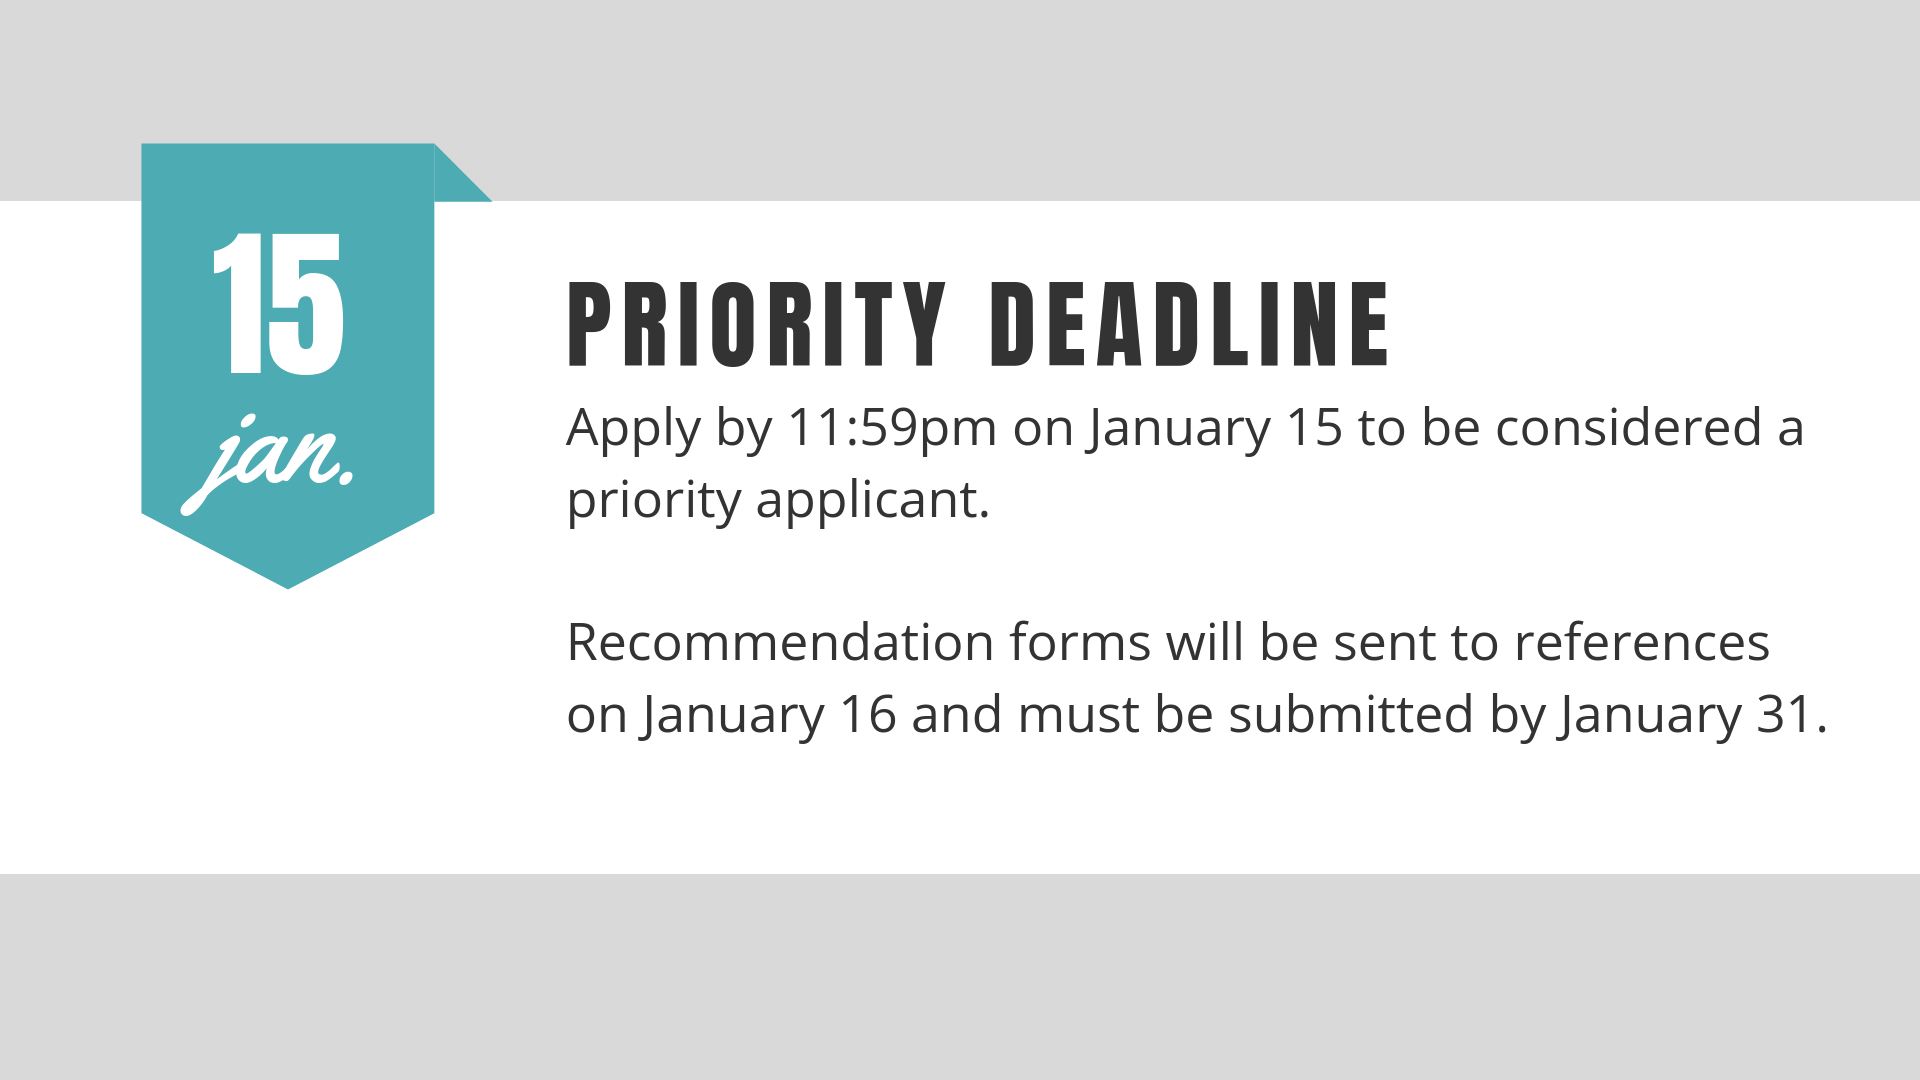 Priority Deadline is January 15